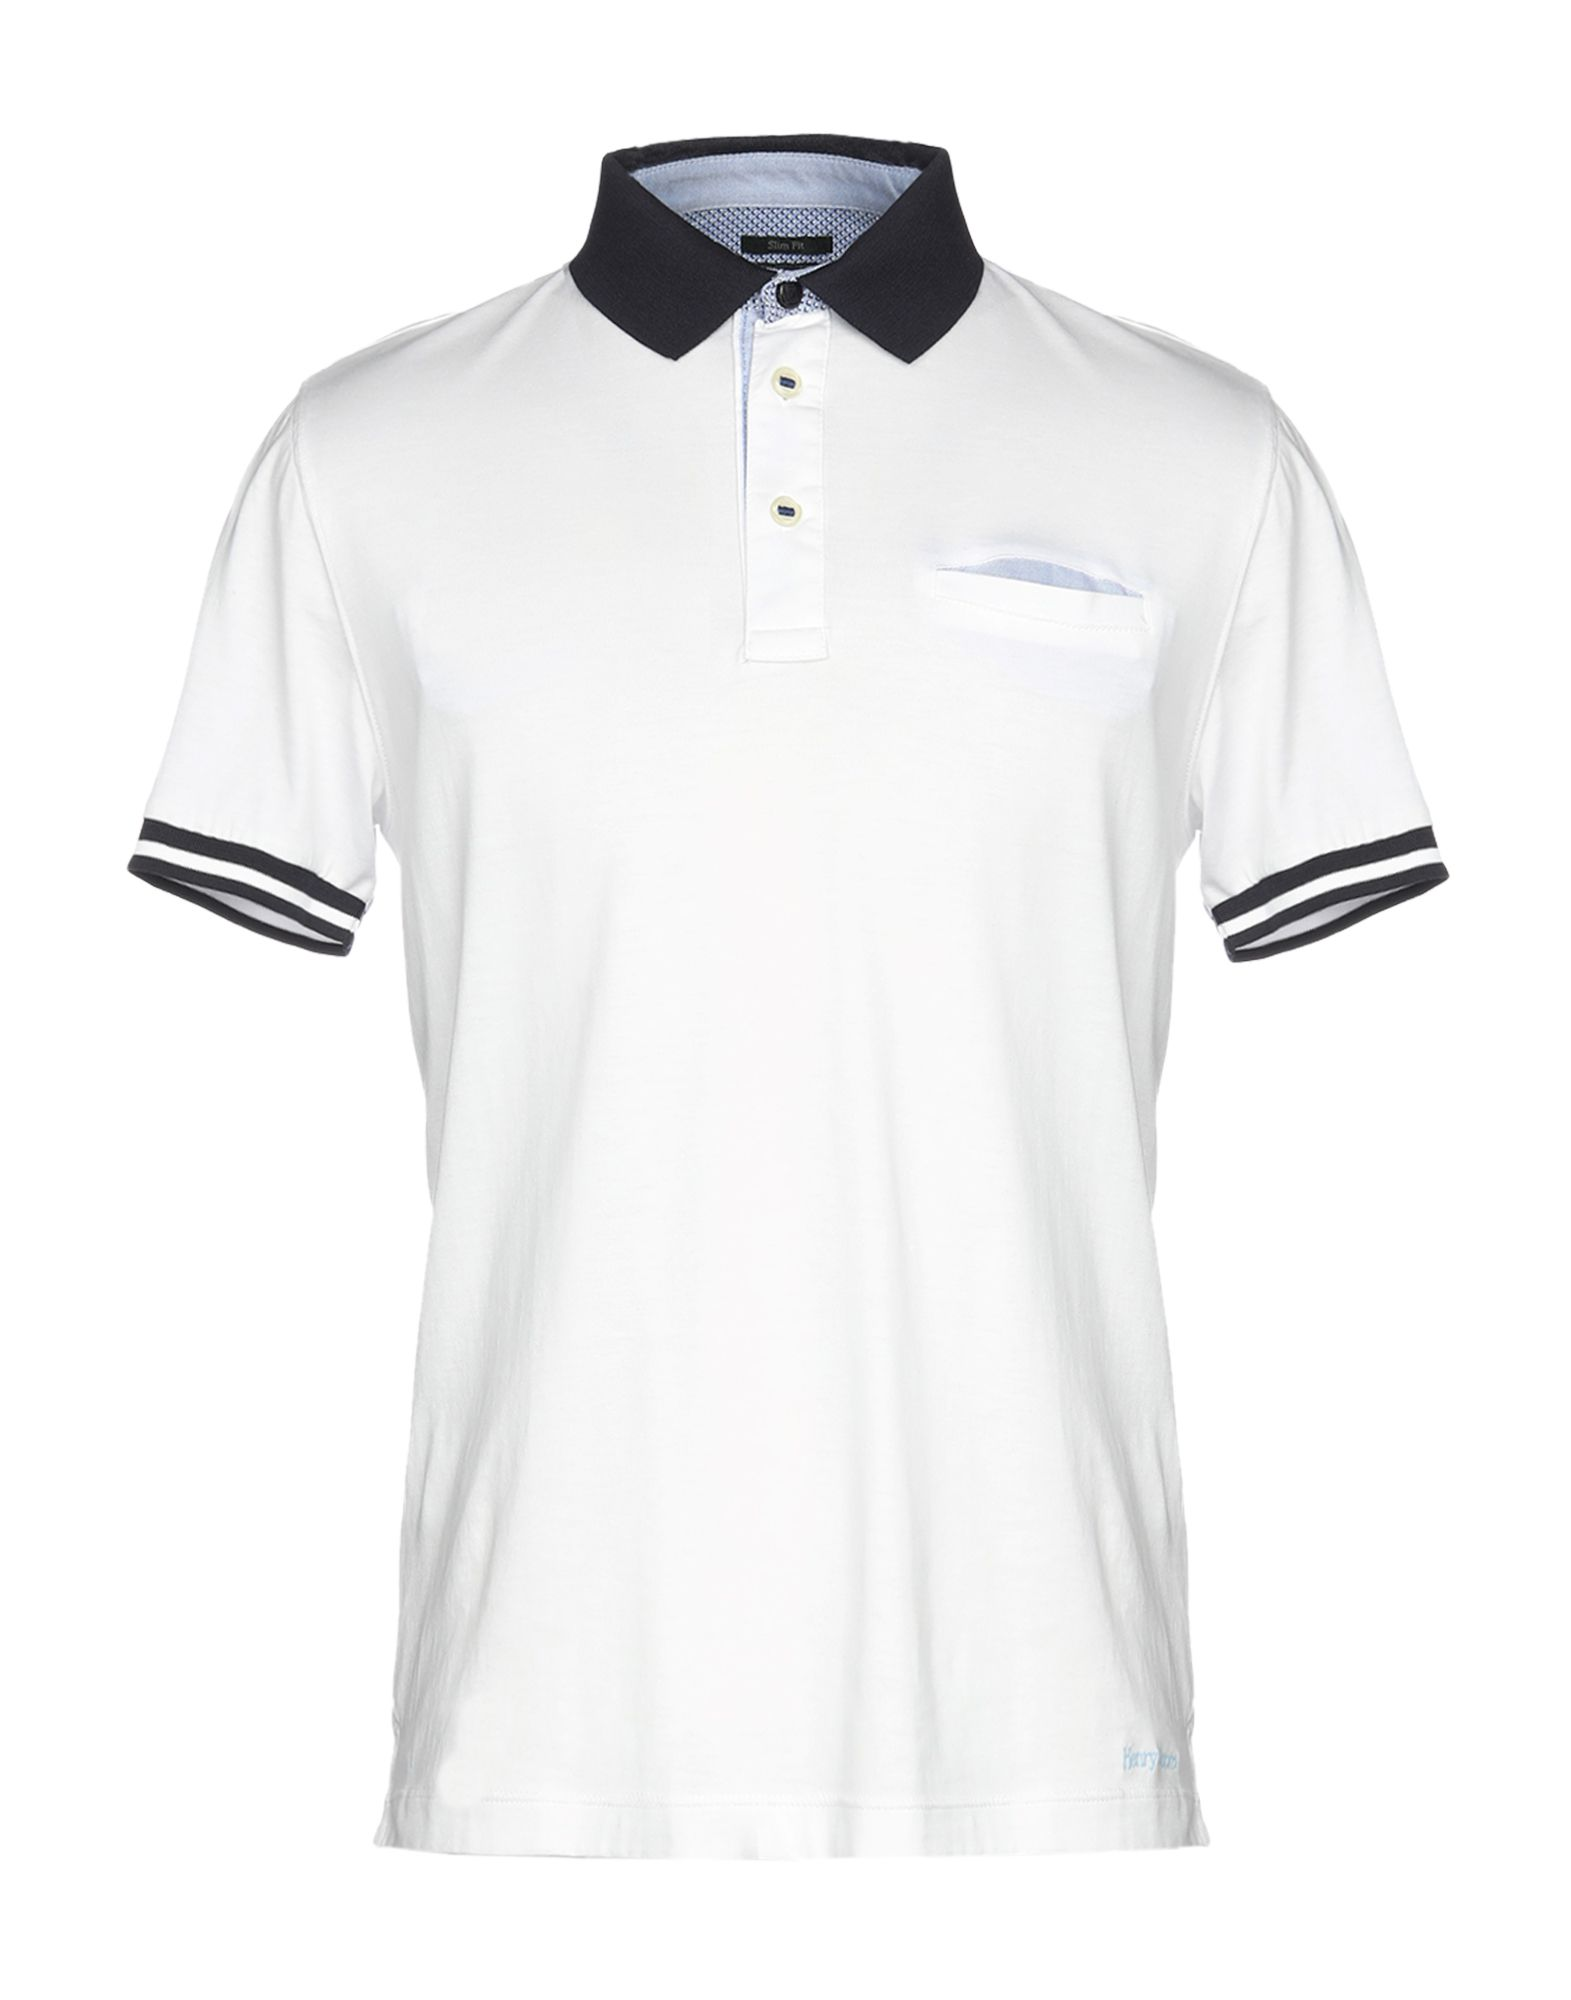 Henry Cotton s Polo Shirts for Men - Henry Cotton s T-Shirts And Tops  6f410930e999b